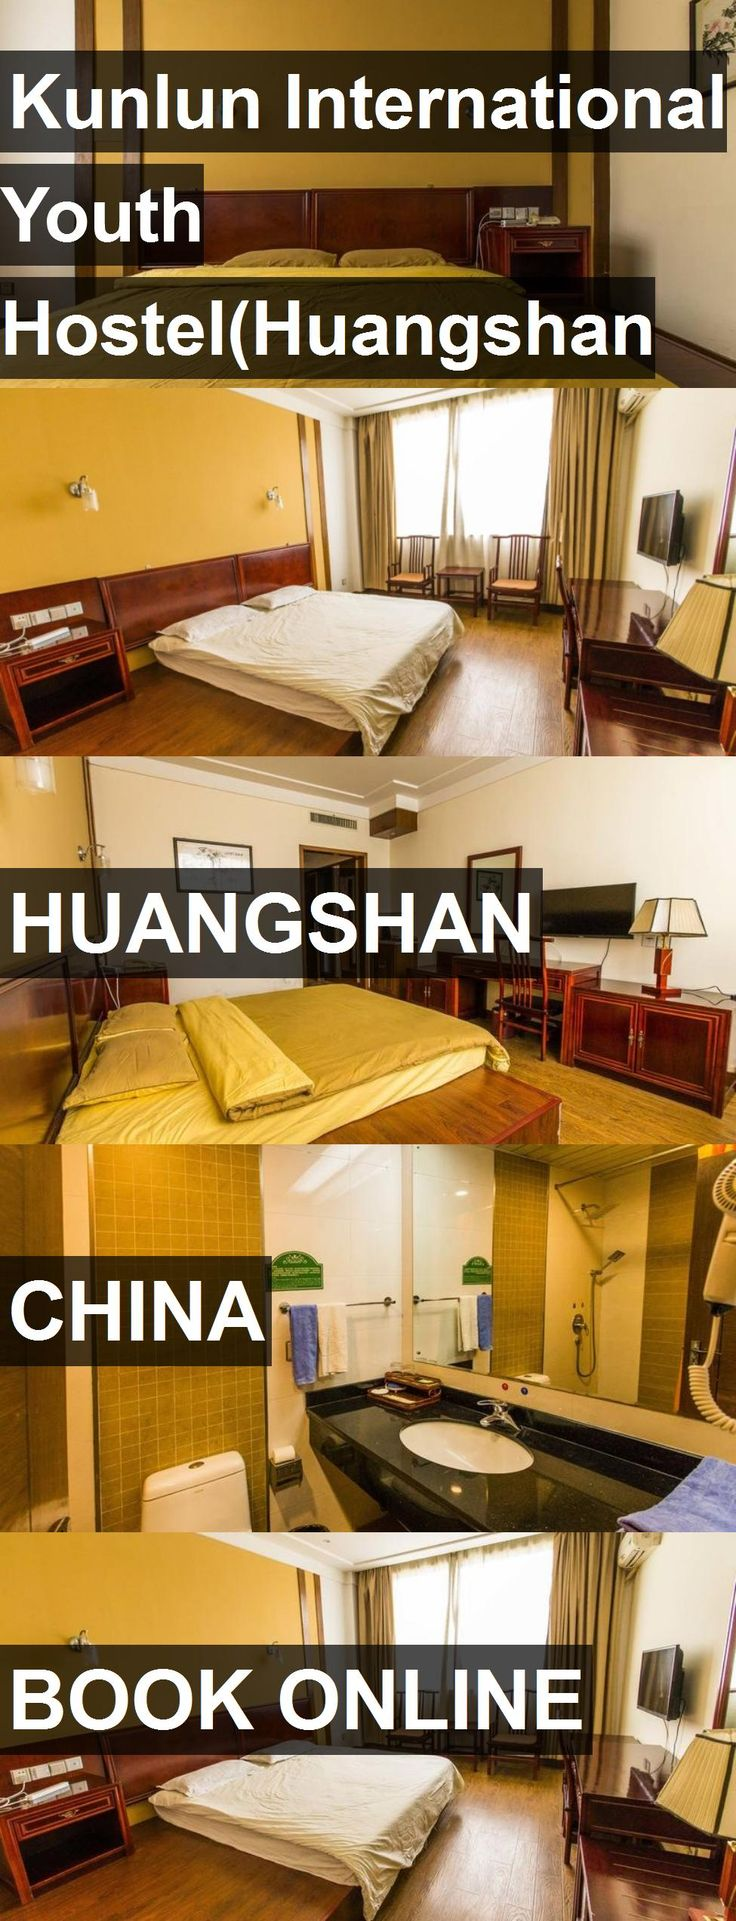 Kunlun International Youth Hostel(Huangshan City) in Huangshan, China. For more information, photos, reviews and best prices please follow the link. #China #Huangshan #travel #vacation #hostel